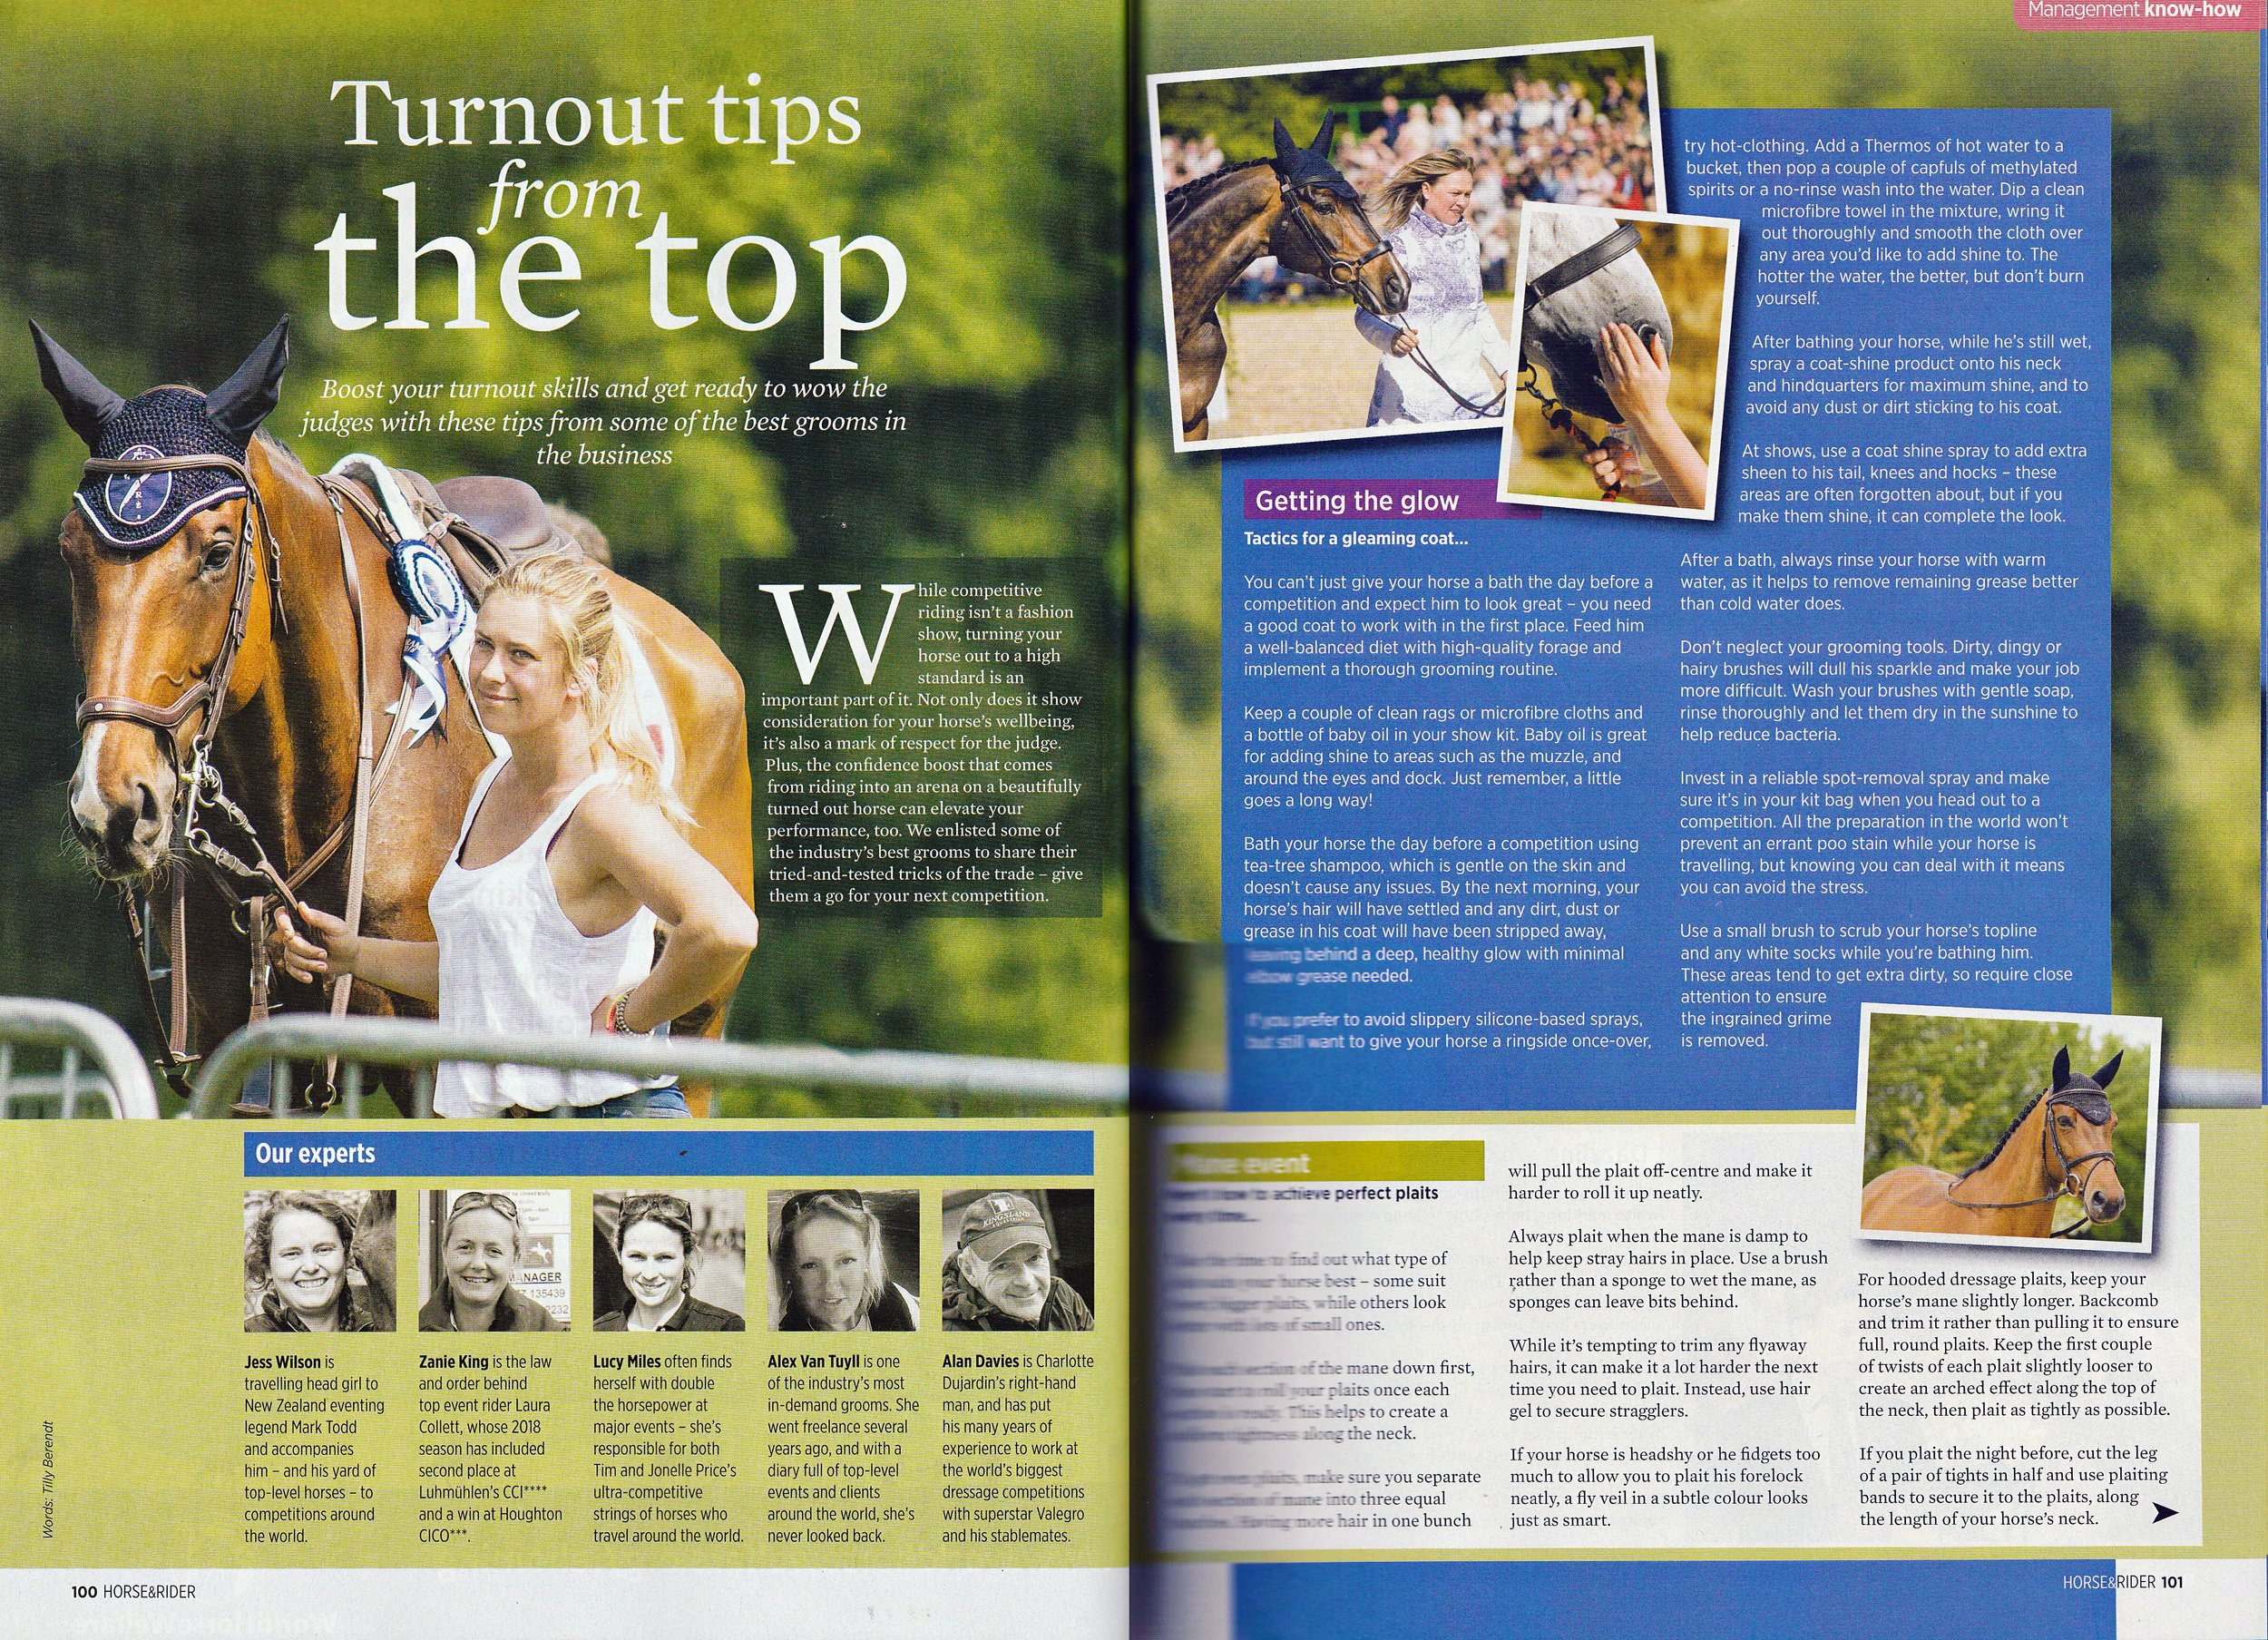 Turnout Tips from the Top